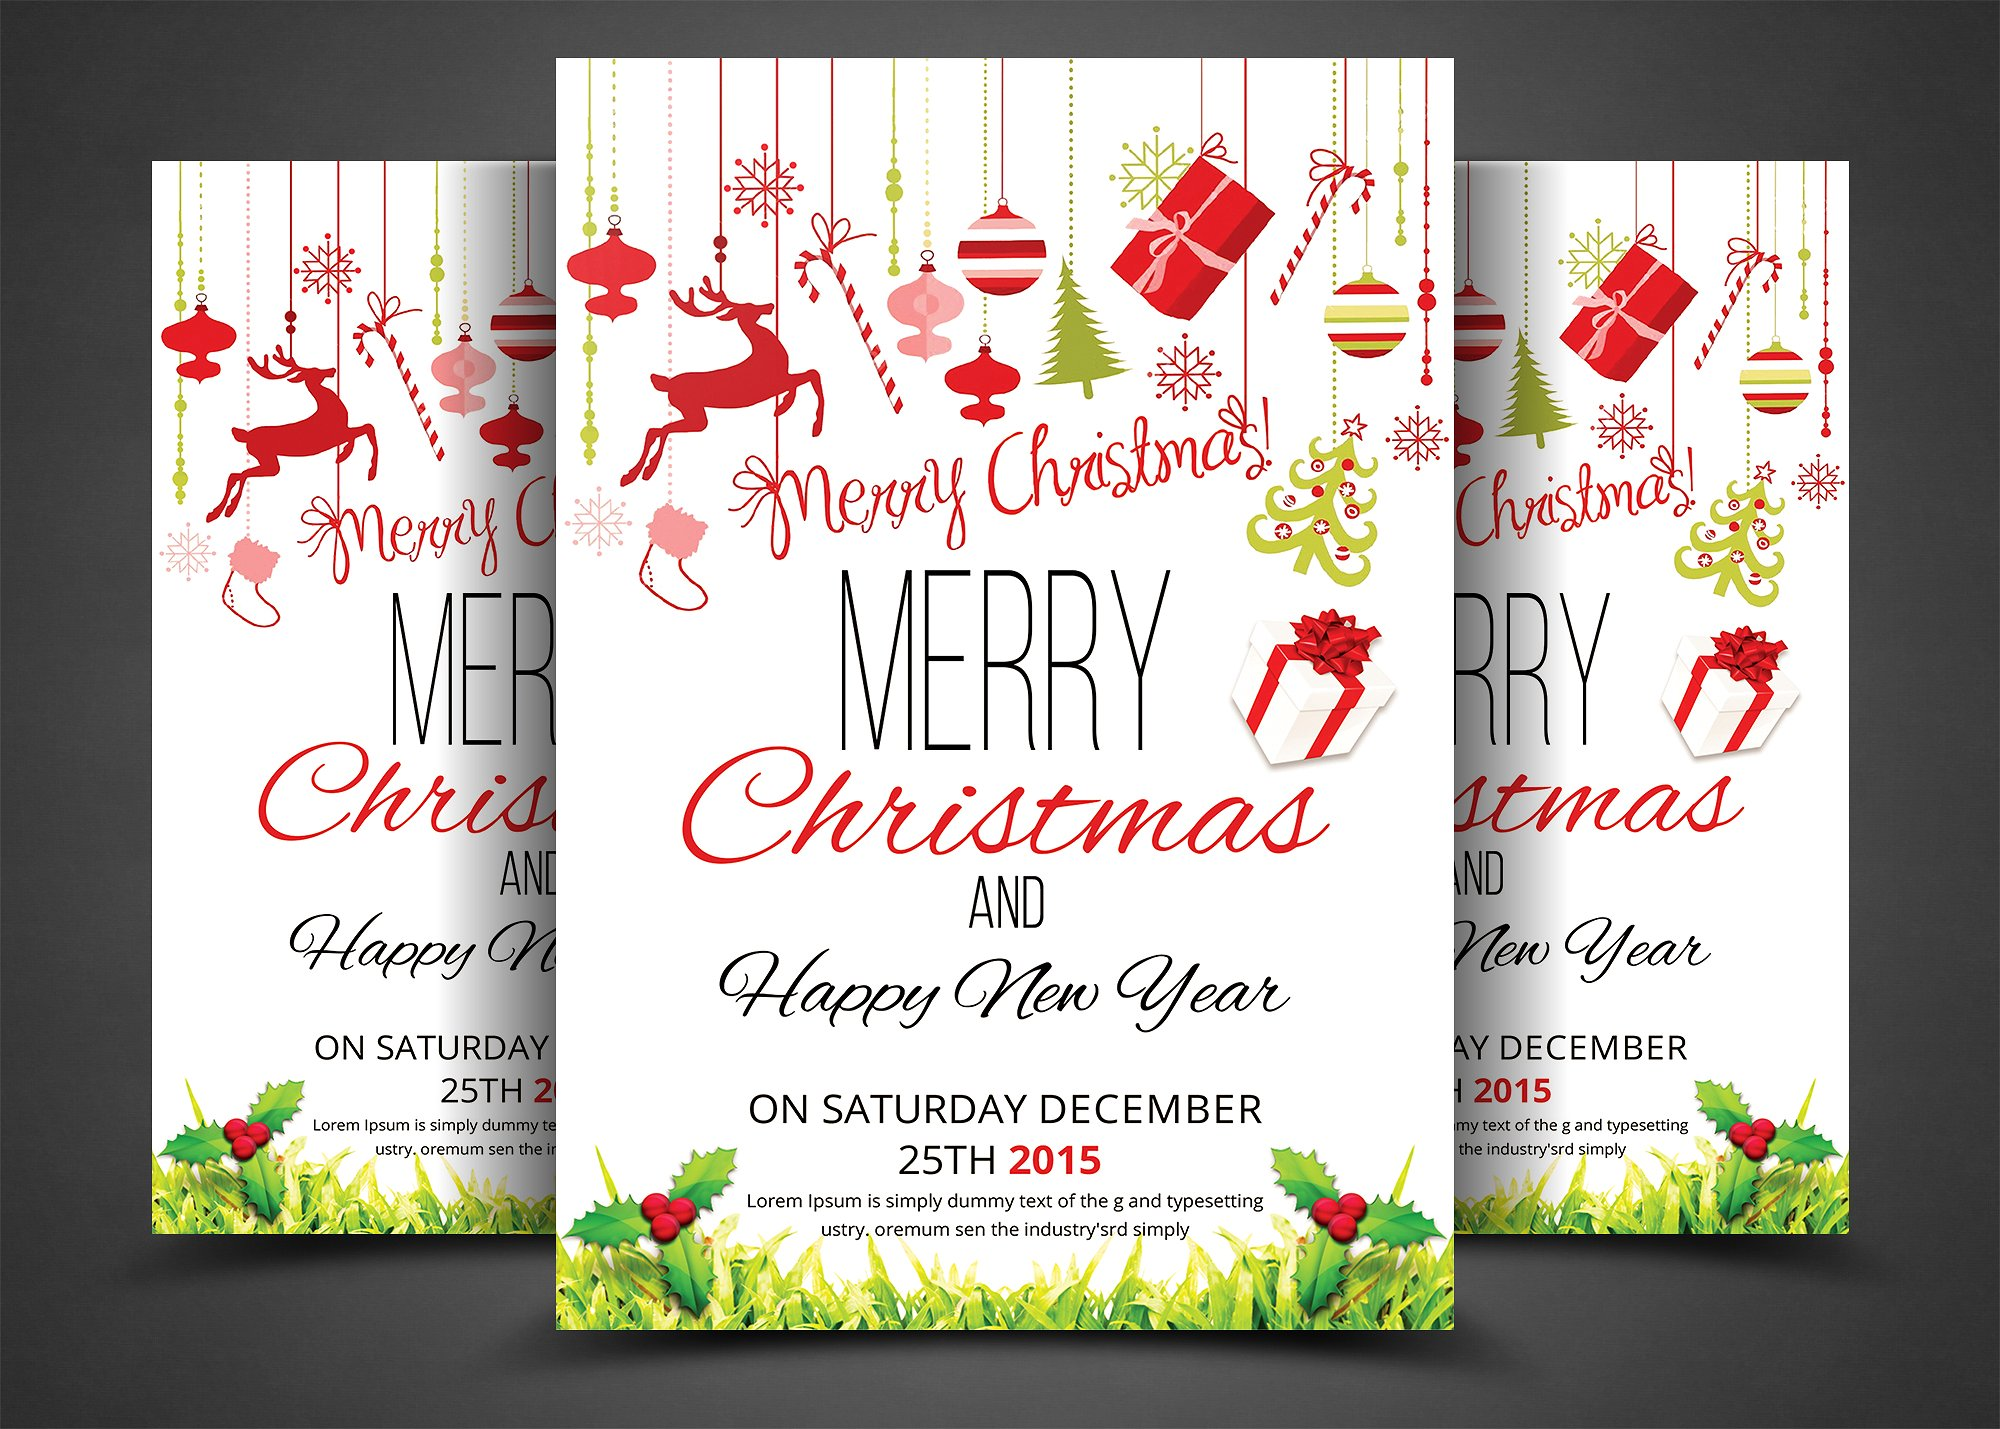 7 Party Invitation Flyer Designs PSD AI Vector EPS Format – Party Invitation Flyer